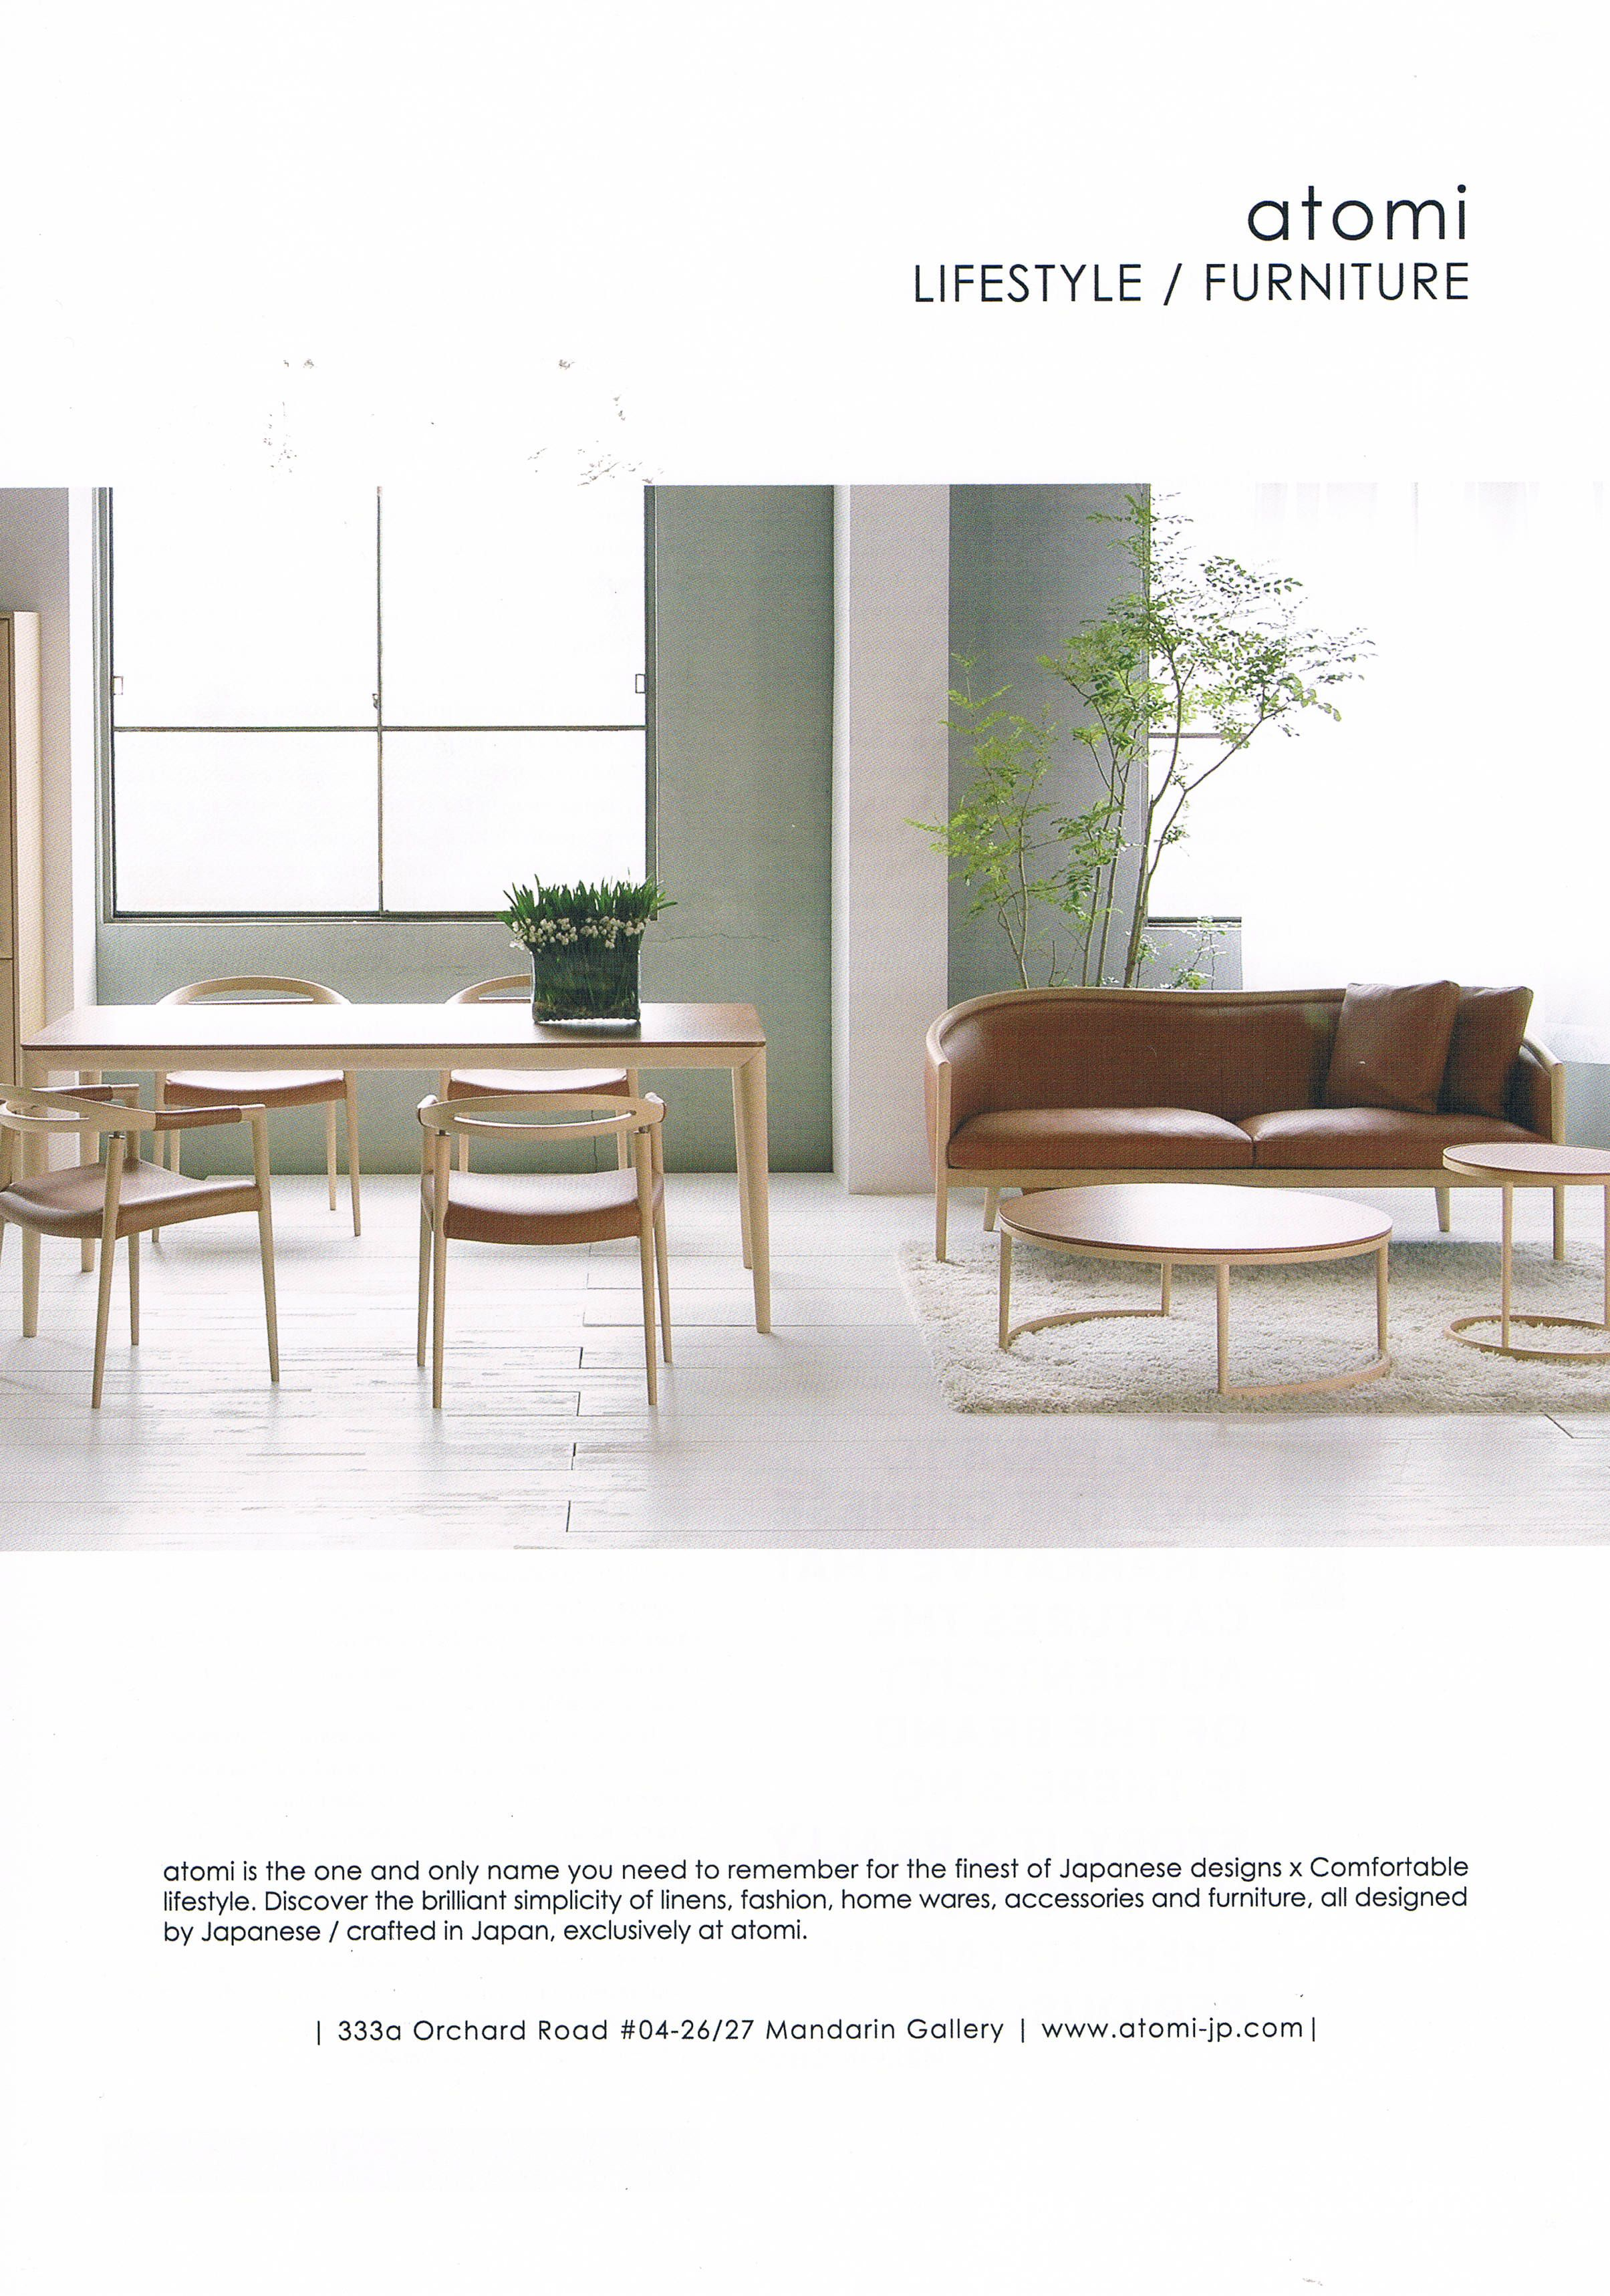 Atomi Is All About Japanese Designs X Comfortable Lifestyle Lifestyle Furniture Furniture Japanese Design